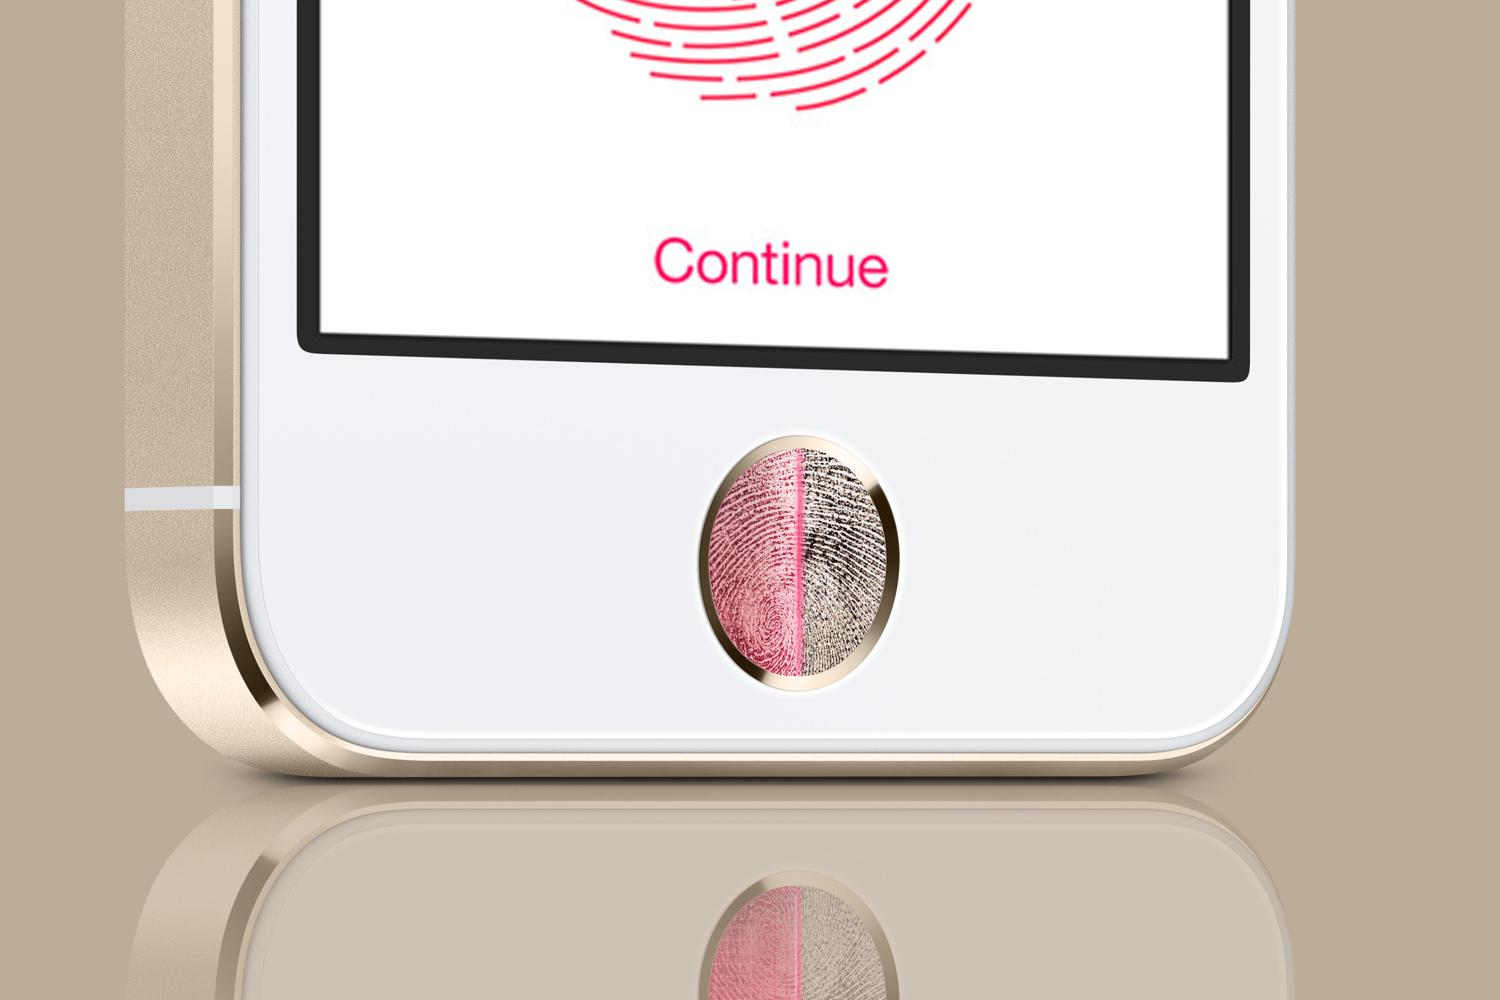 fingerprint lock cases for iphone 5cApple iPhone 5S Touch ID fingerprint sensor  What you need to know dOwHC36N